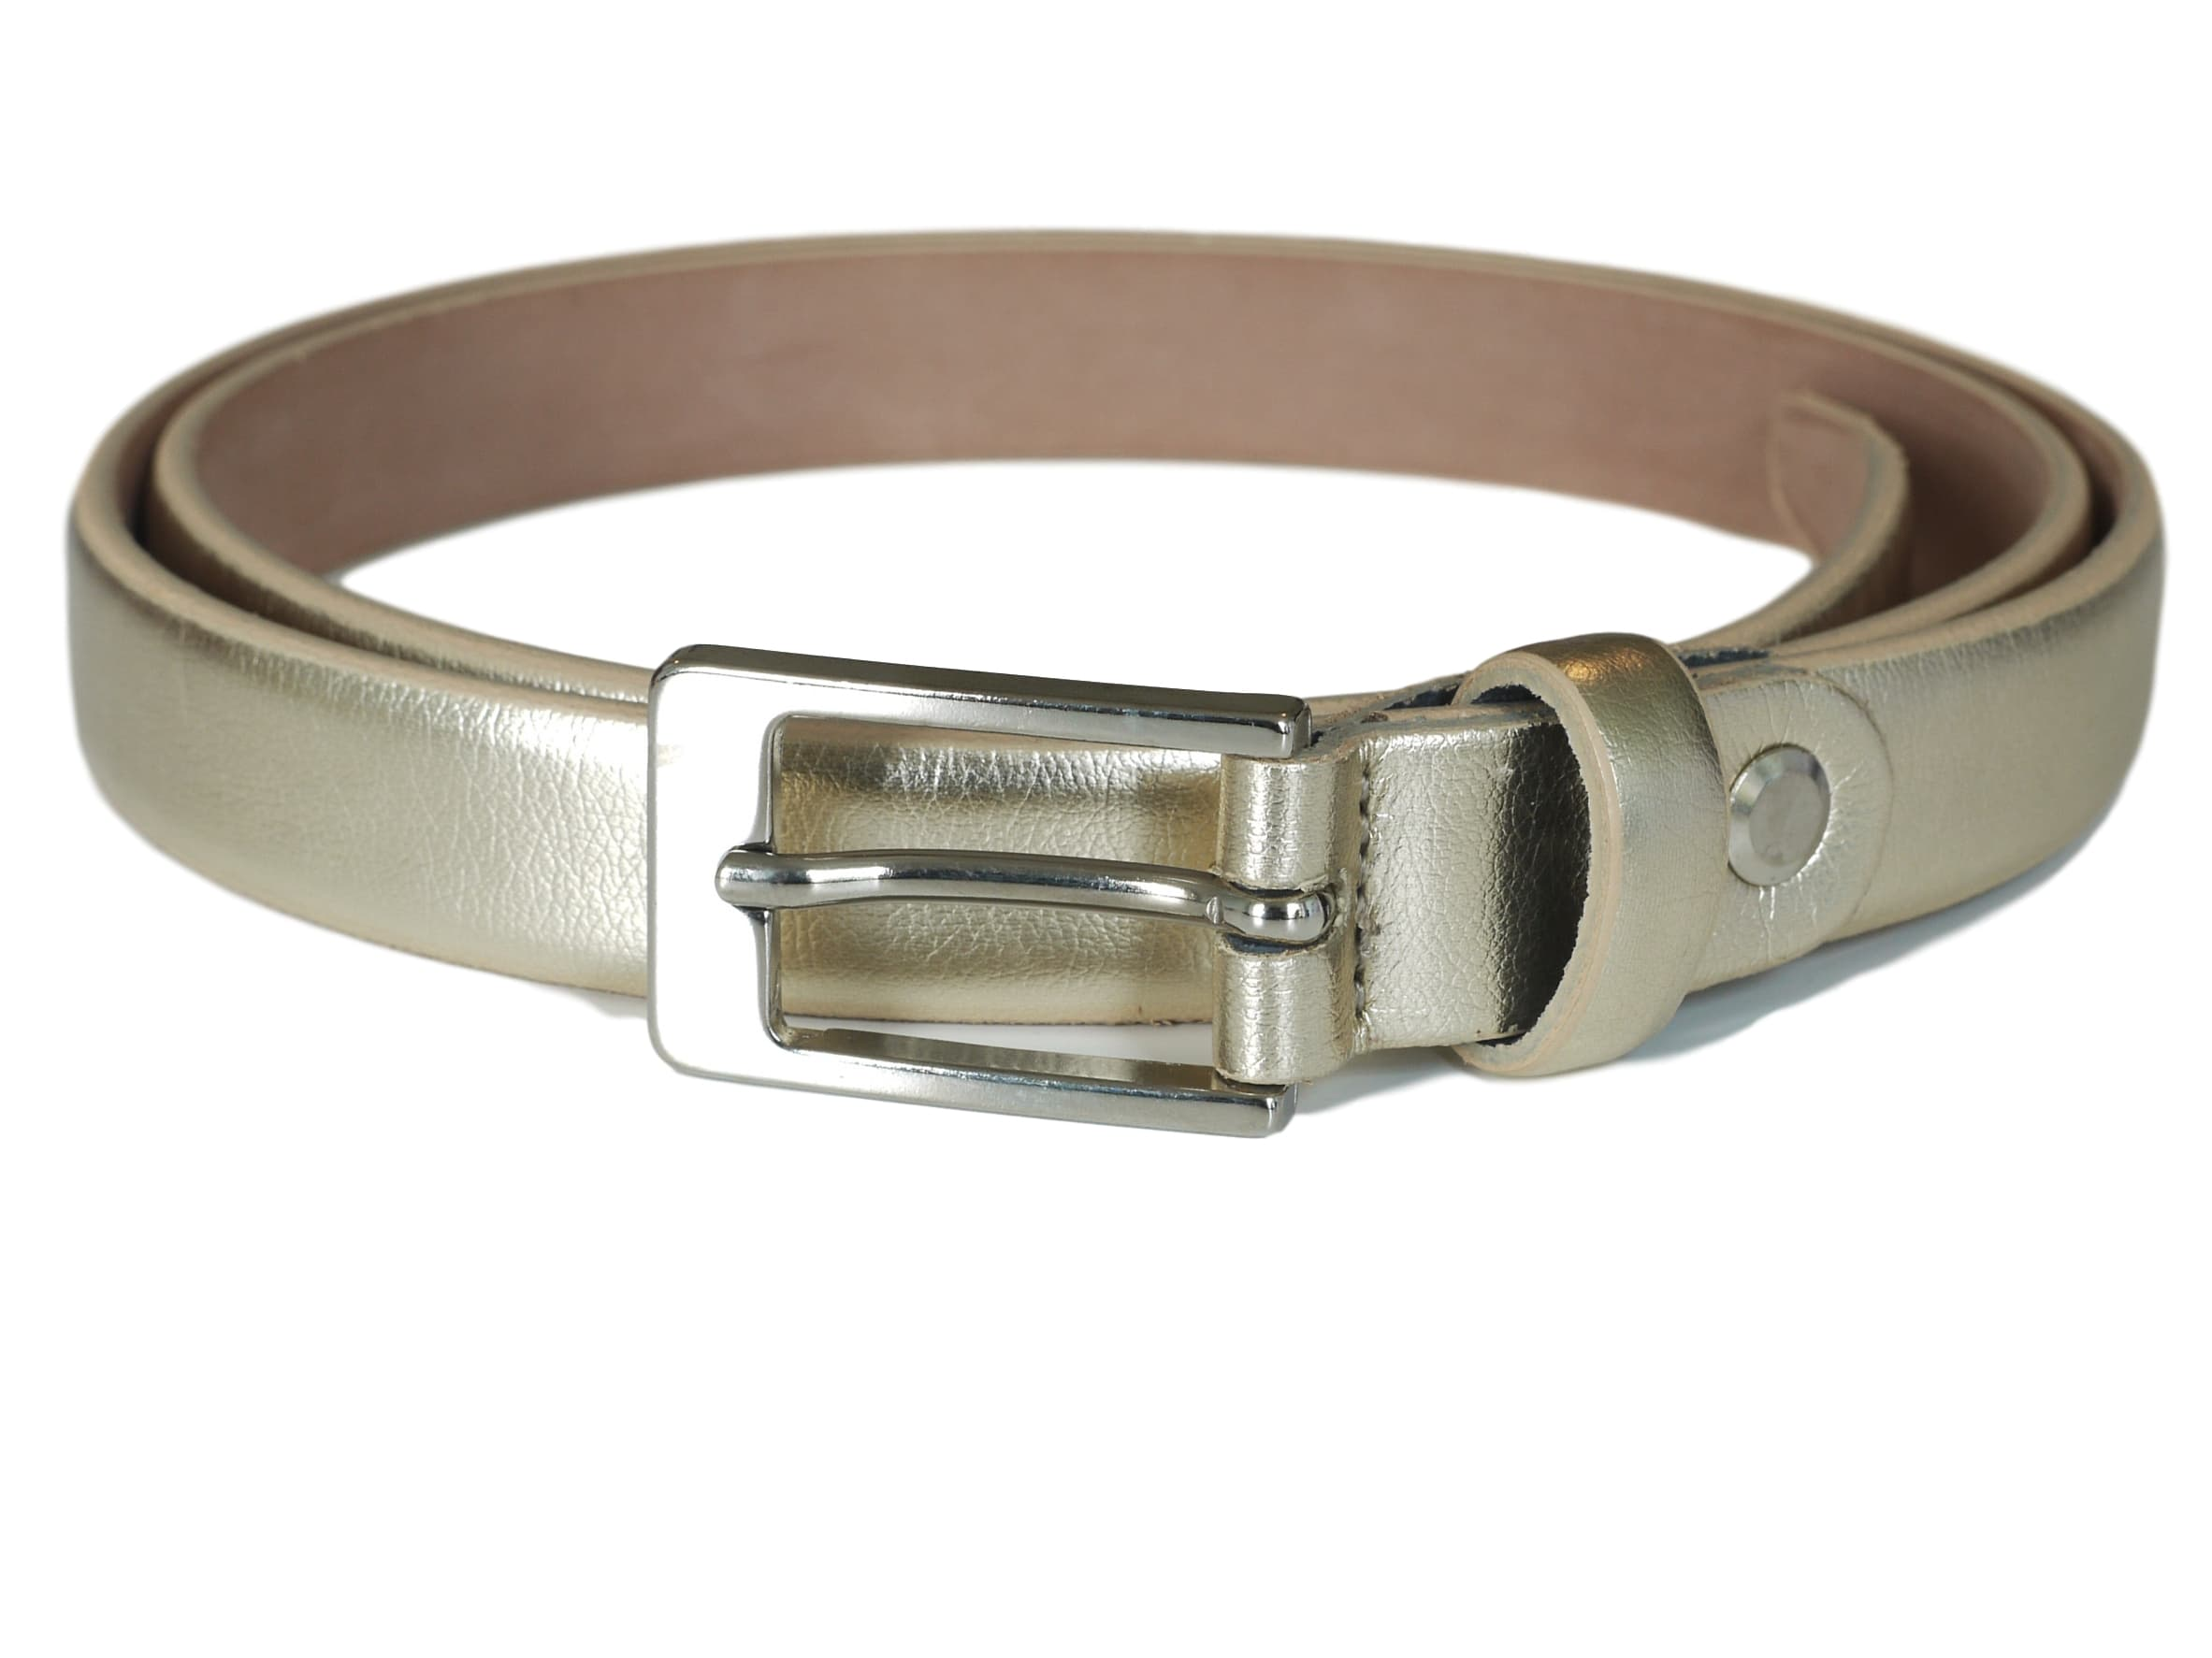 Pale gold skinny leather belt - Astelia Range